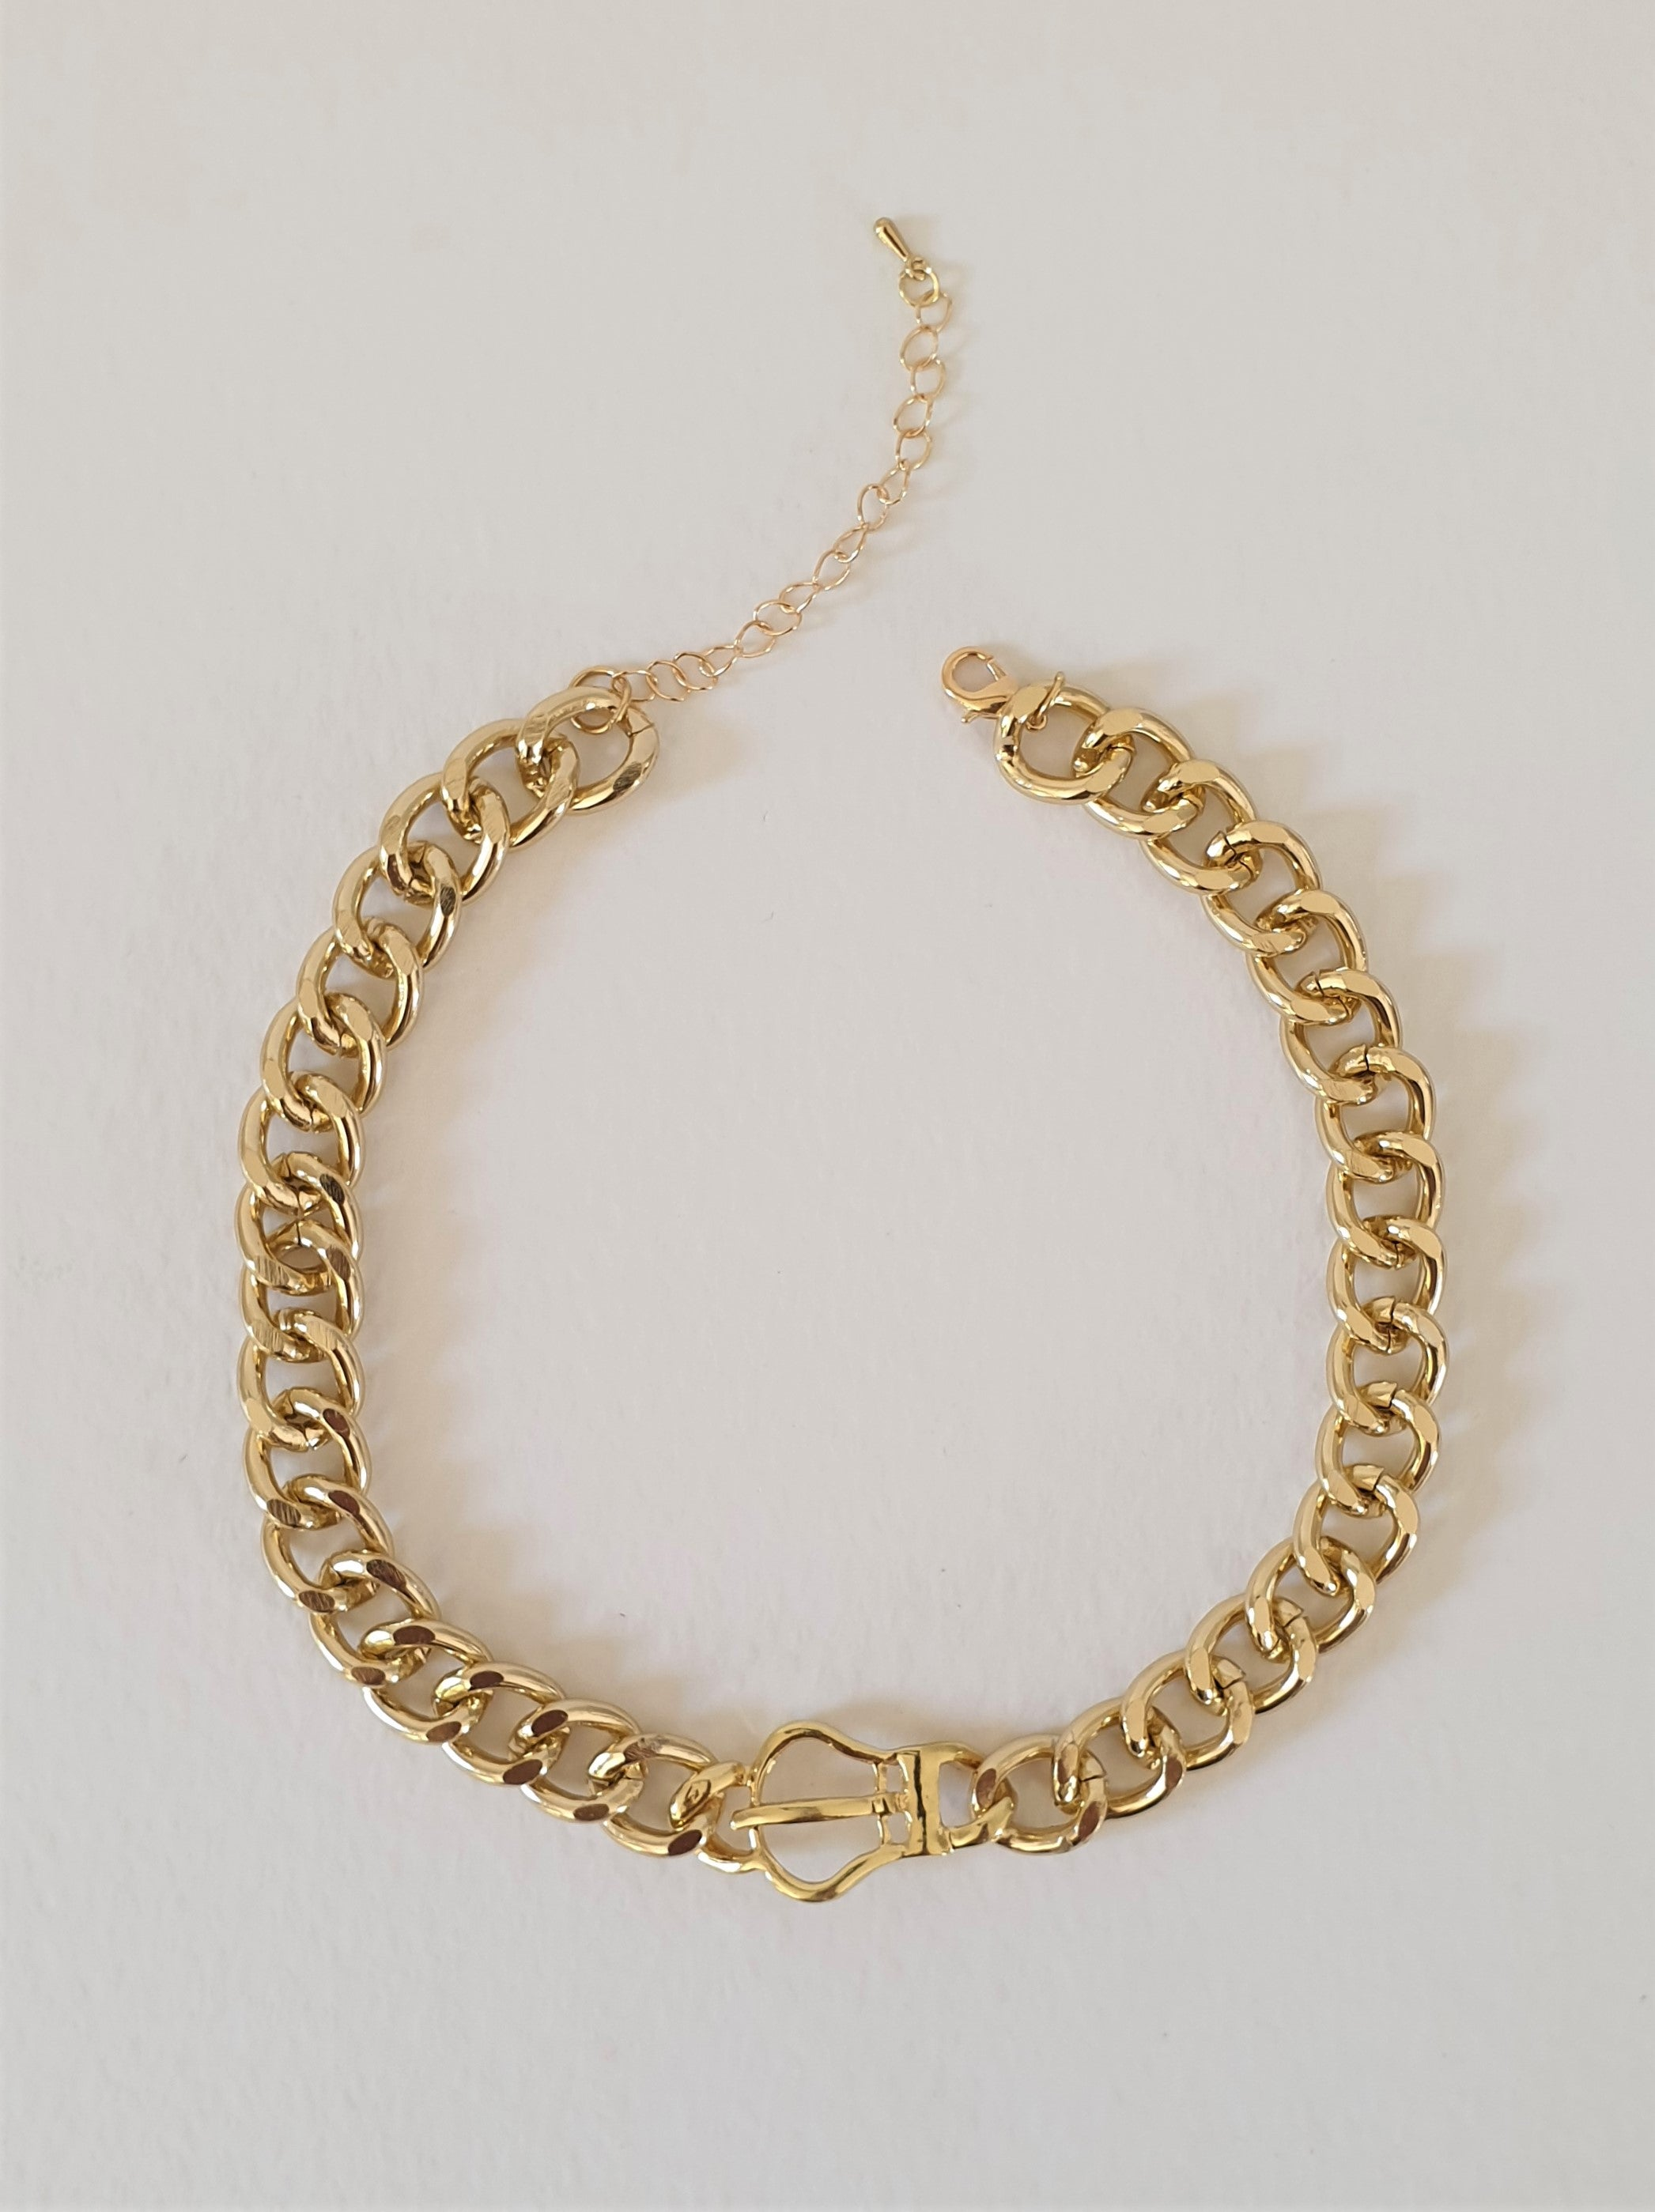 THE CECILIA CHAIN CHOKER